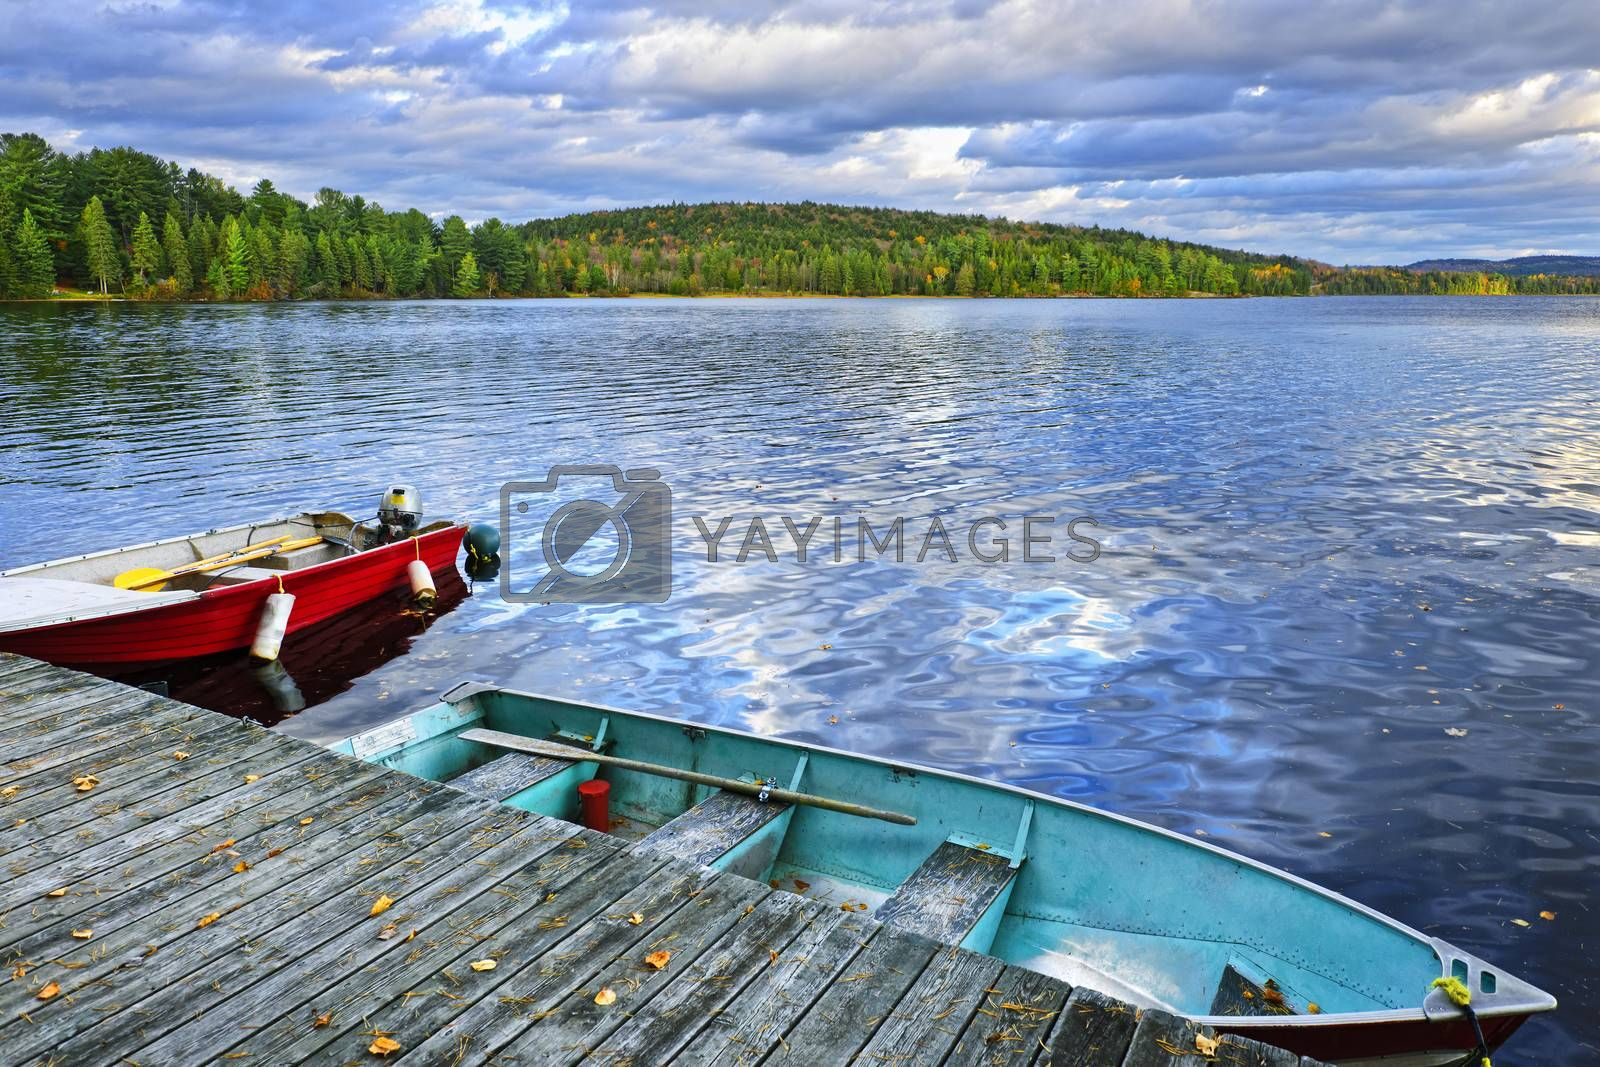 Rowboats docked on Lake of Two Rivers in Algonquin Park, Ontario, Canada